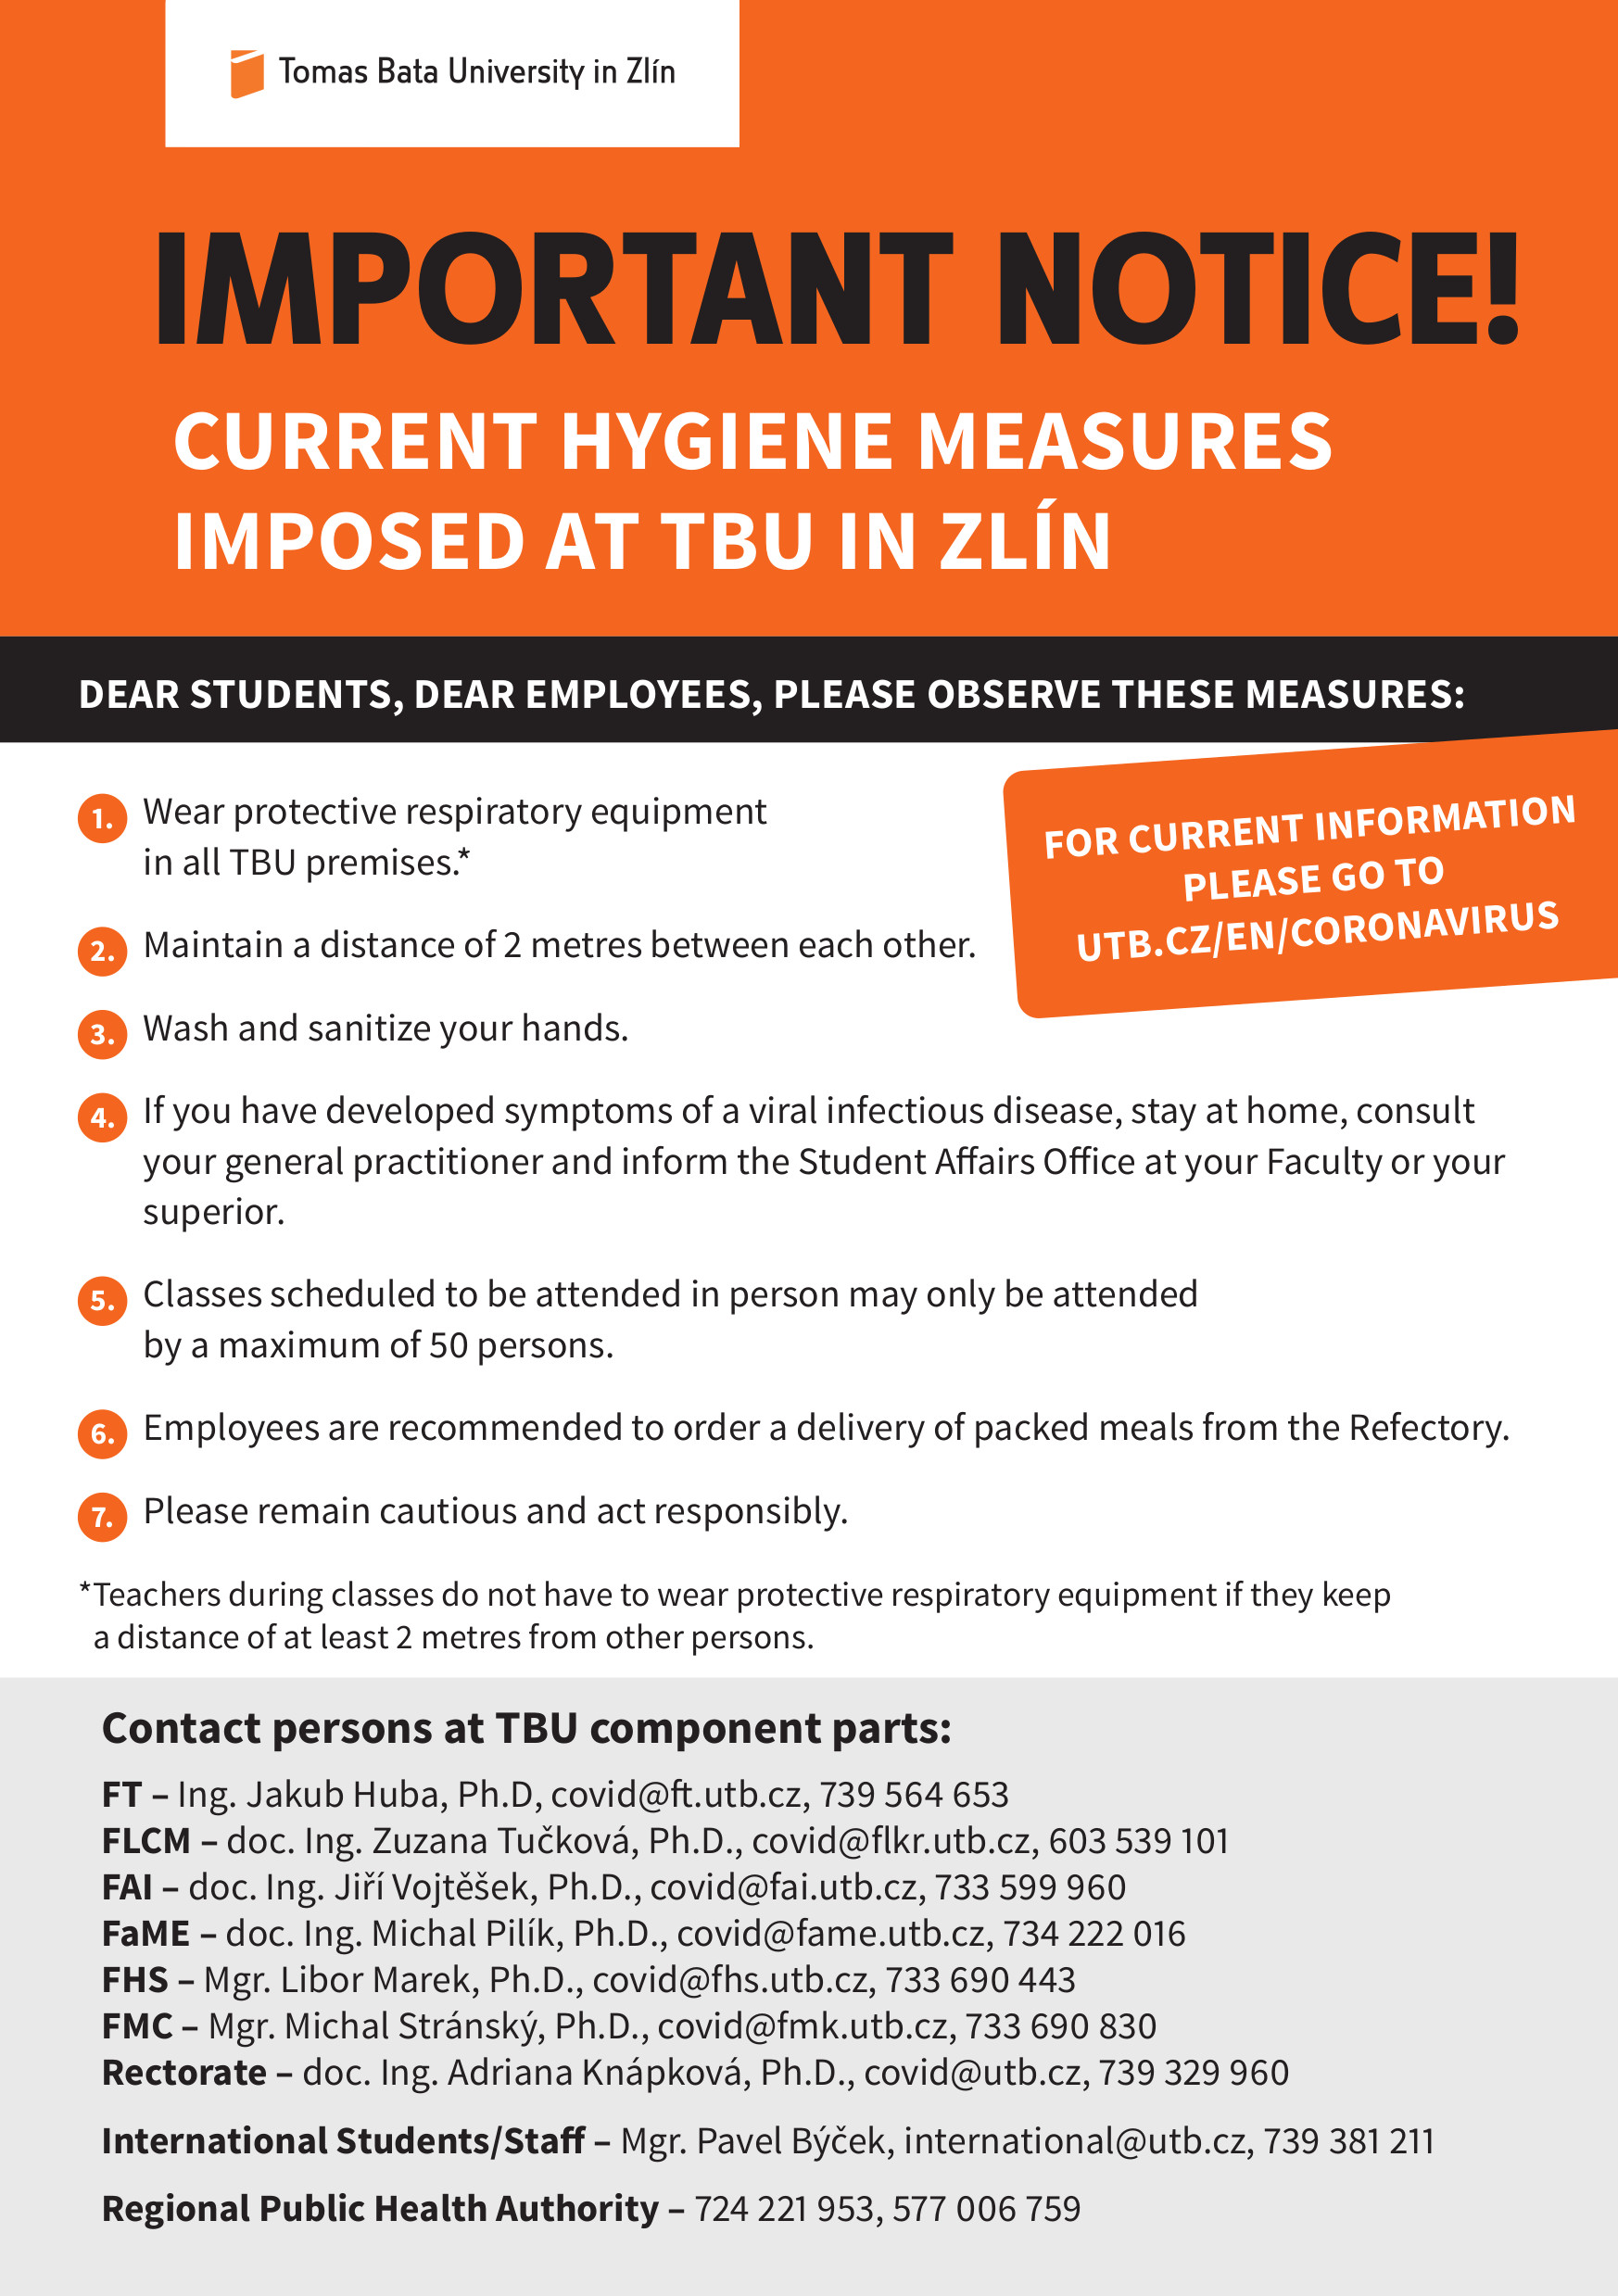 Current hygiene measures imposed at TBU in Zlín